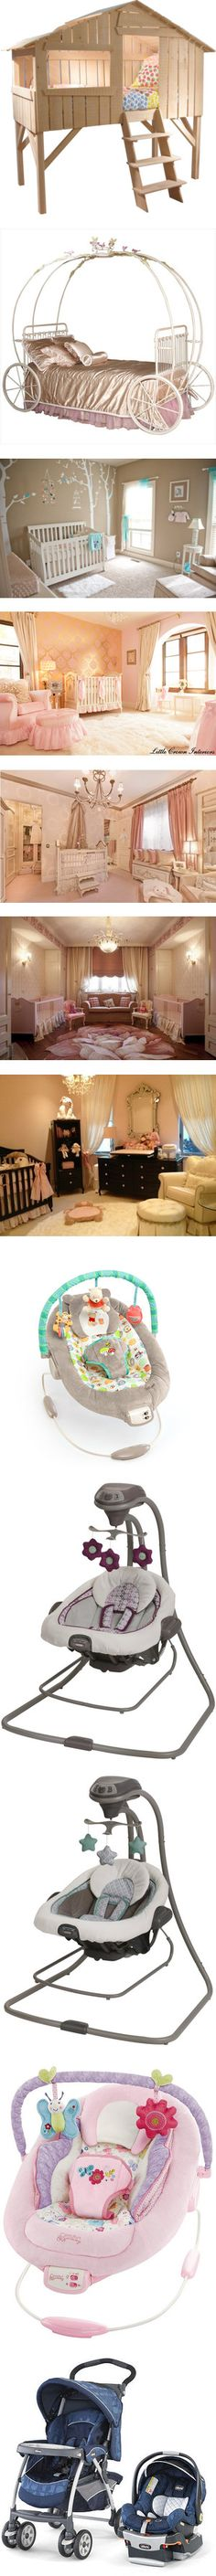 #2 by angelina-fiorilo on Polyvore featuring home, beds, furniture, kids, rooms, françois lamazerolles, children's room, children's furniture, baby and house